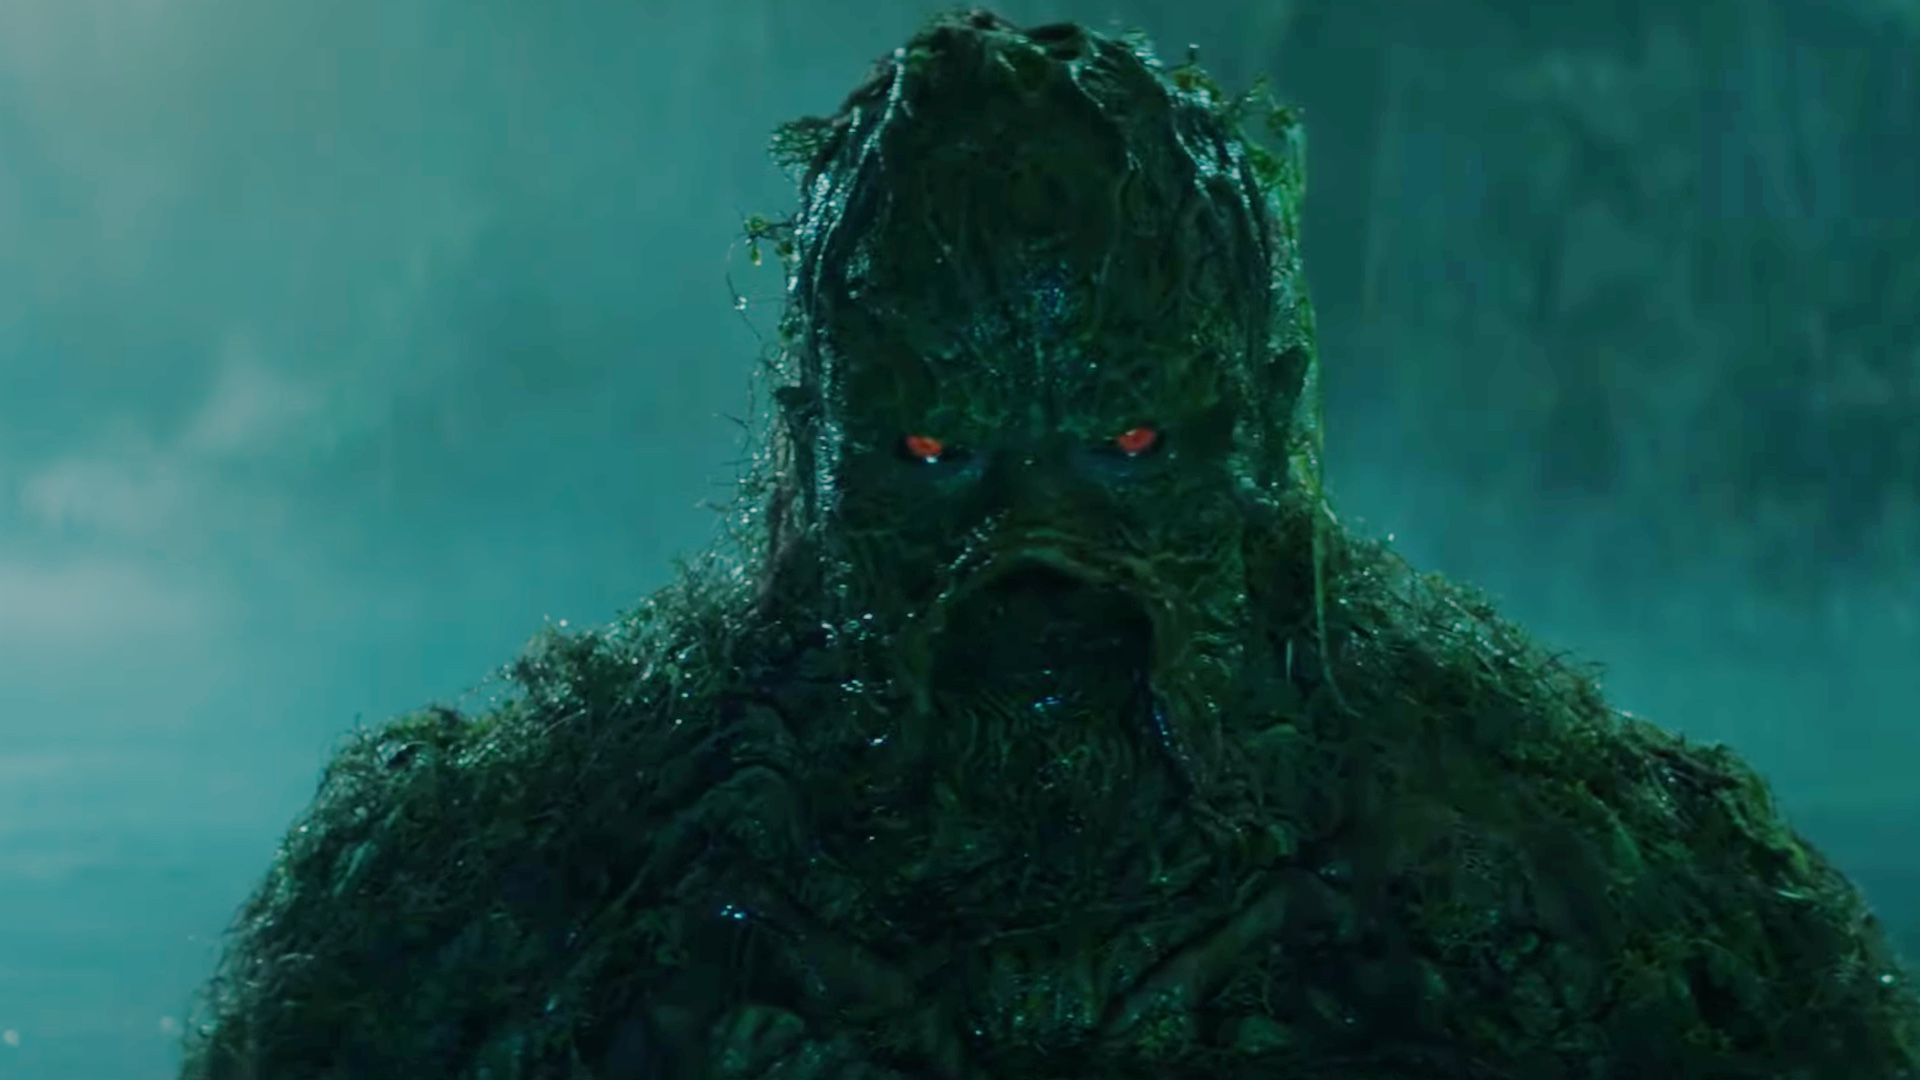 teaser-trailer-for-dcs-swamp-thing-gives-us-our-first-look-at-the-creature-social.jpg